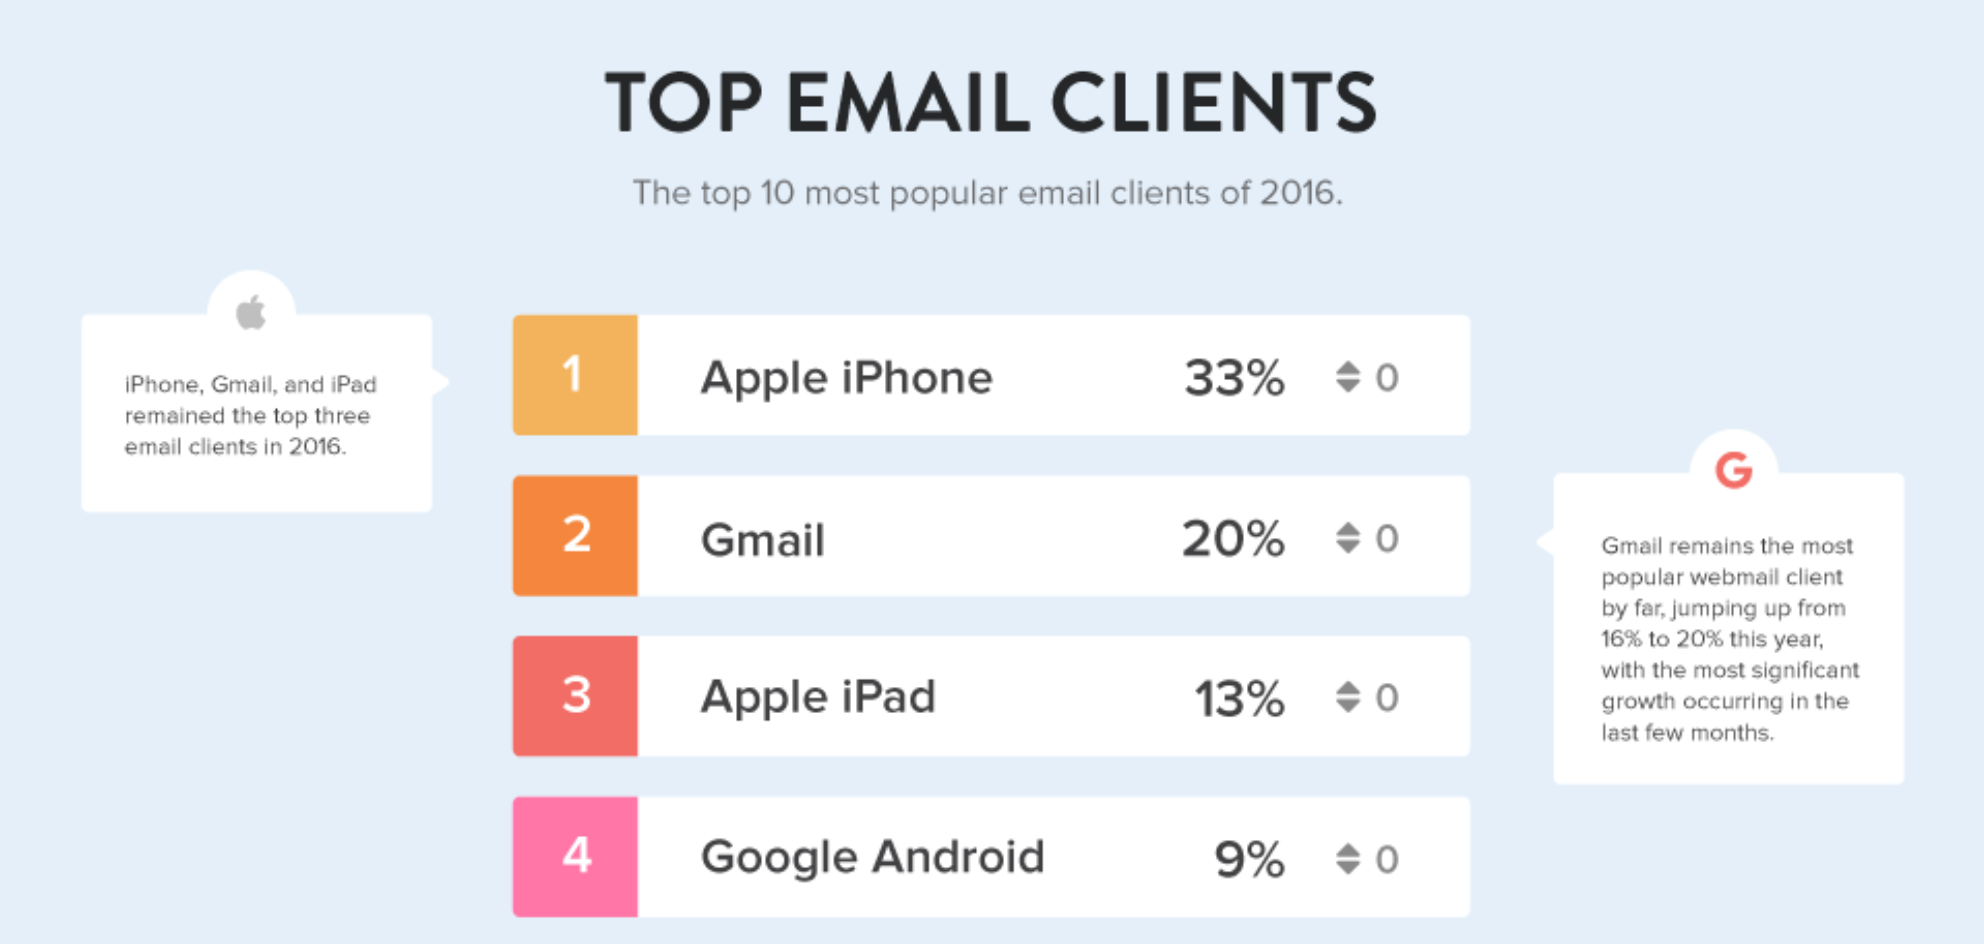 Gmail newsletters are preferred by top marketers all around the world.